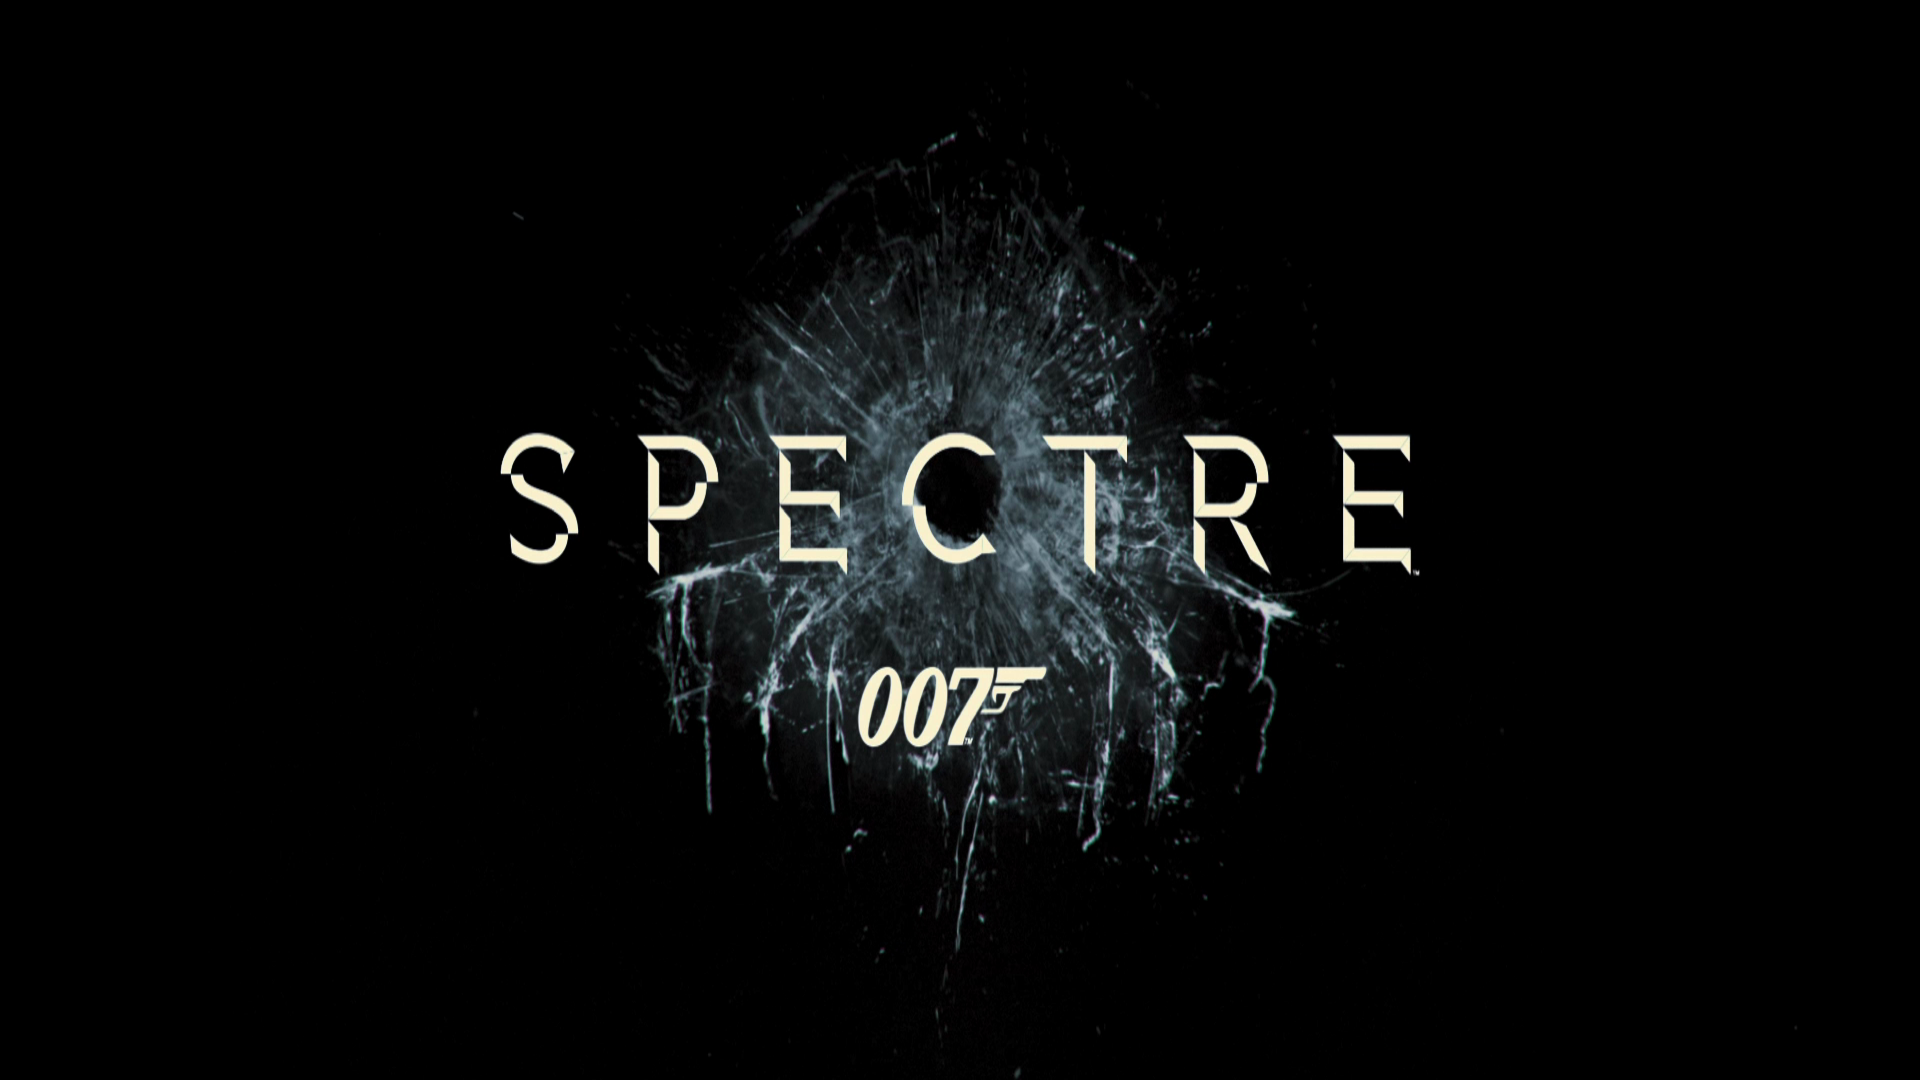 spectre 007 full hd wallpaper and background image | 1920x1080 | id